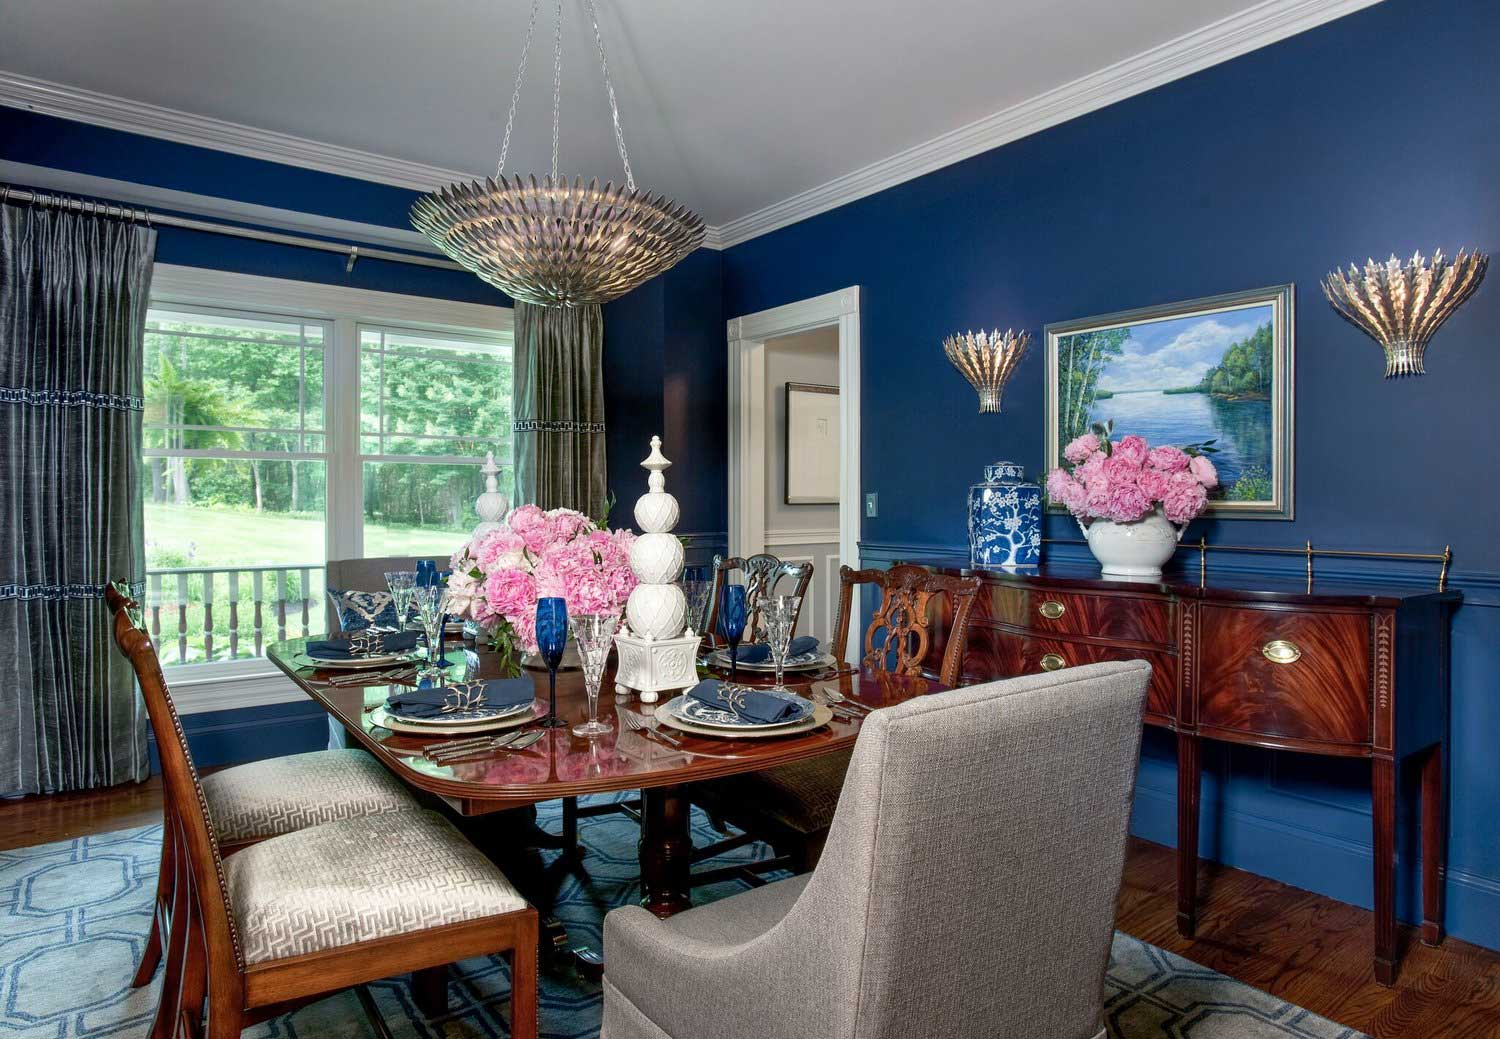 Dining room design by Boehm Graham Interior Design